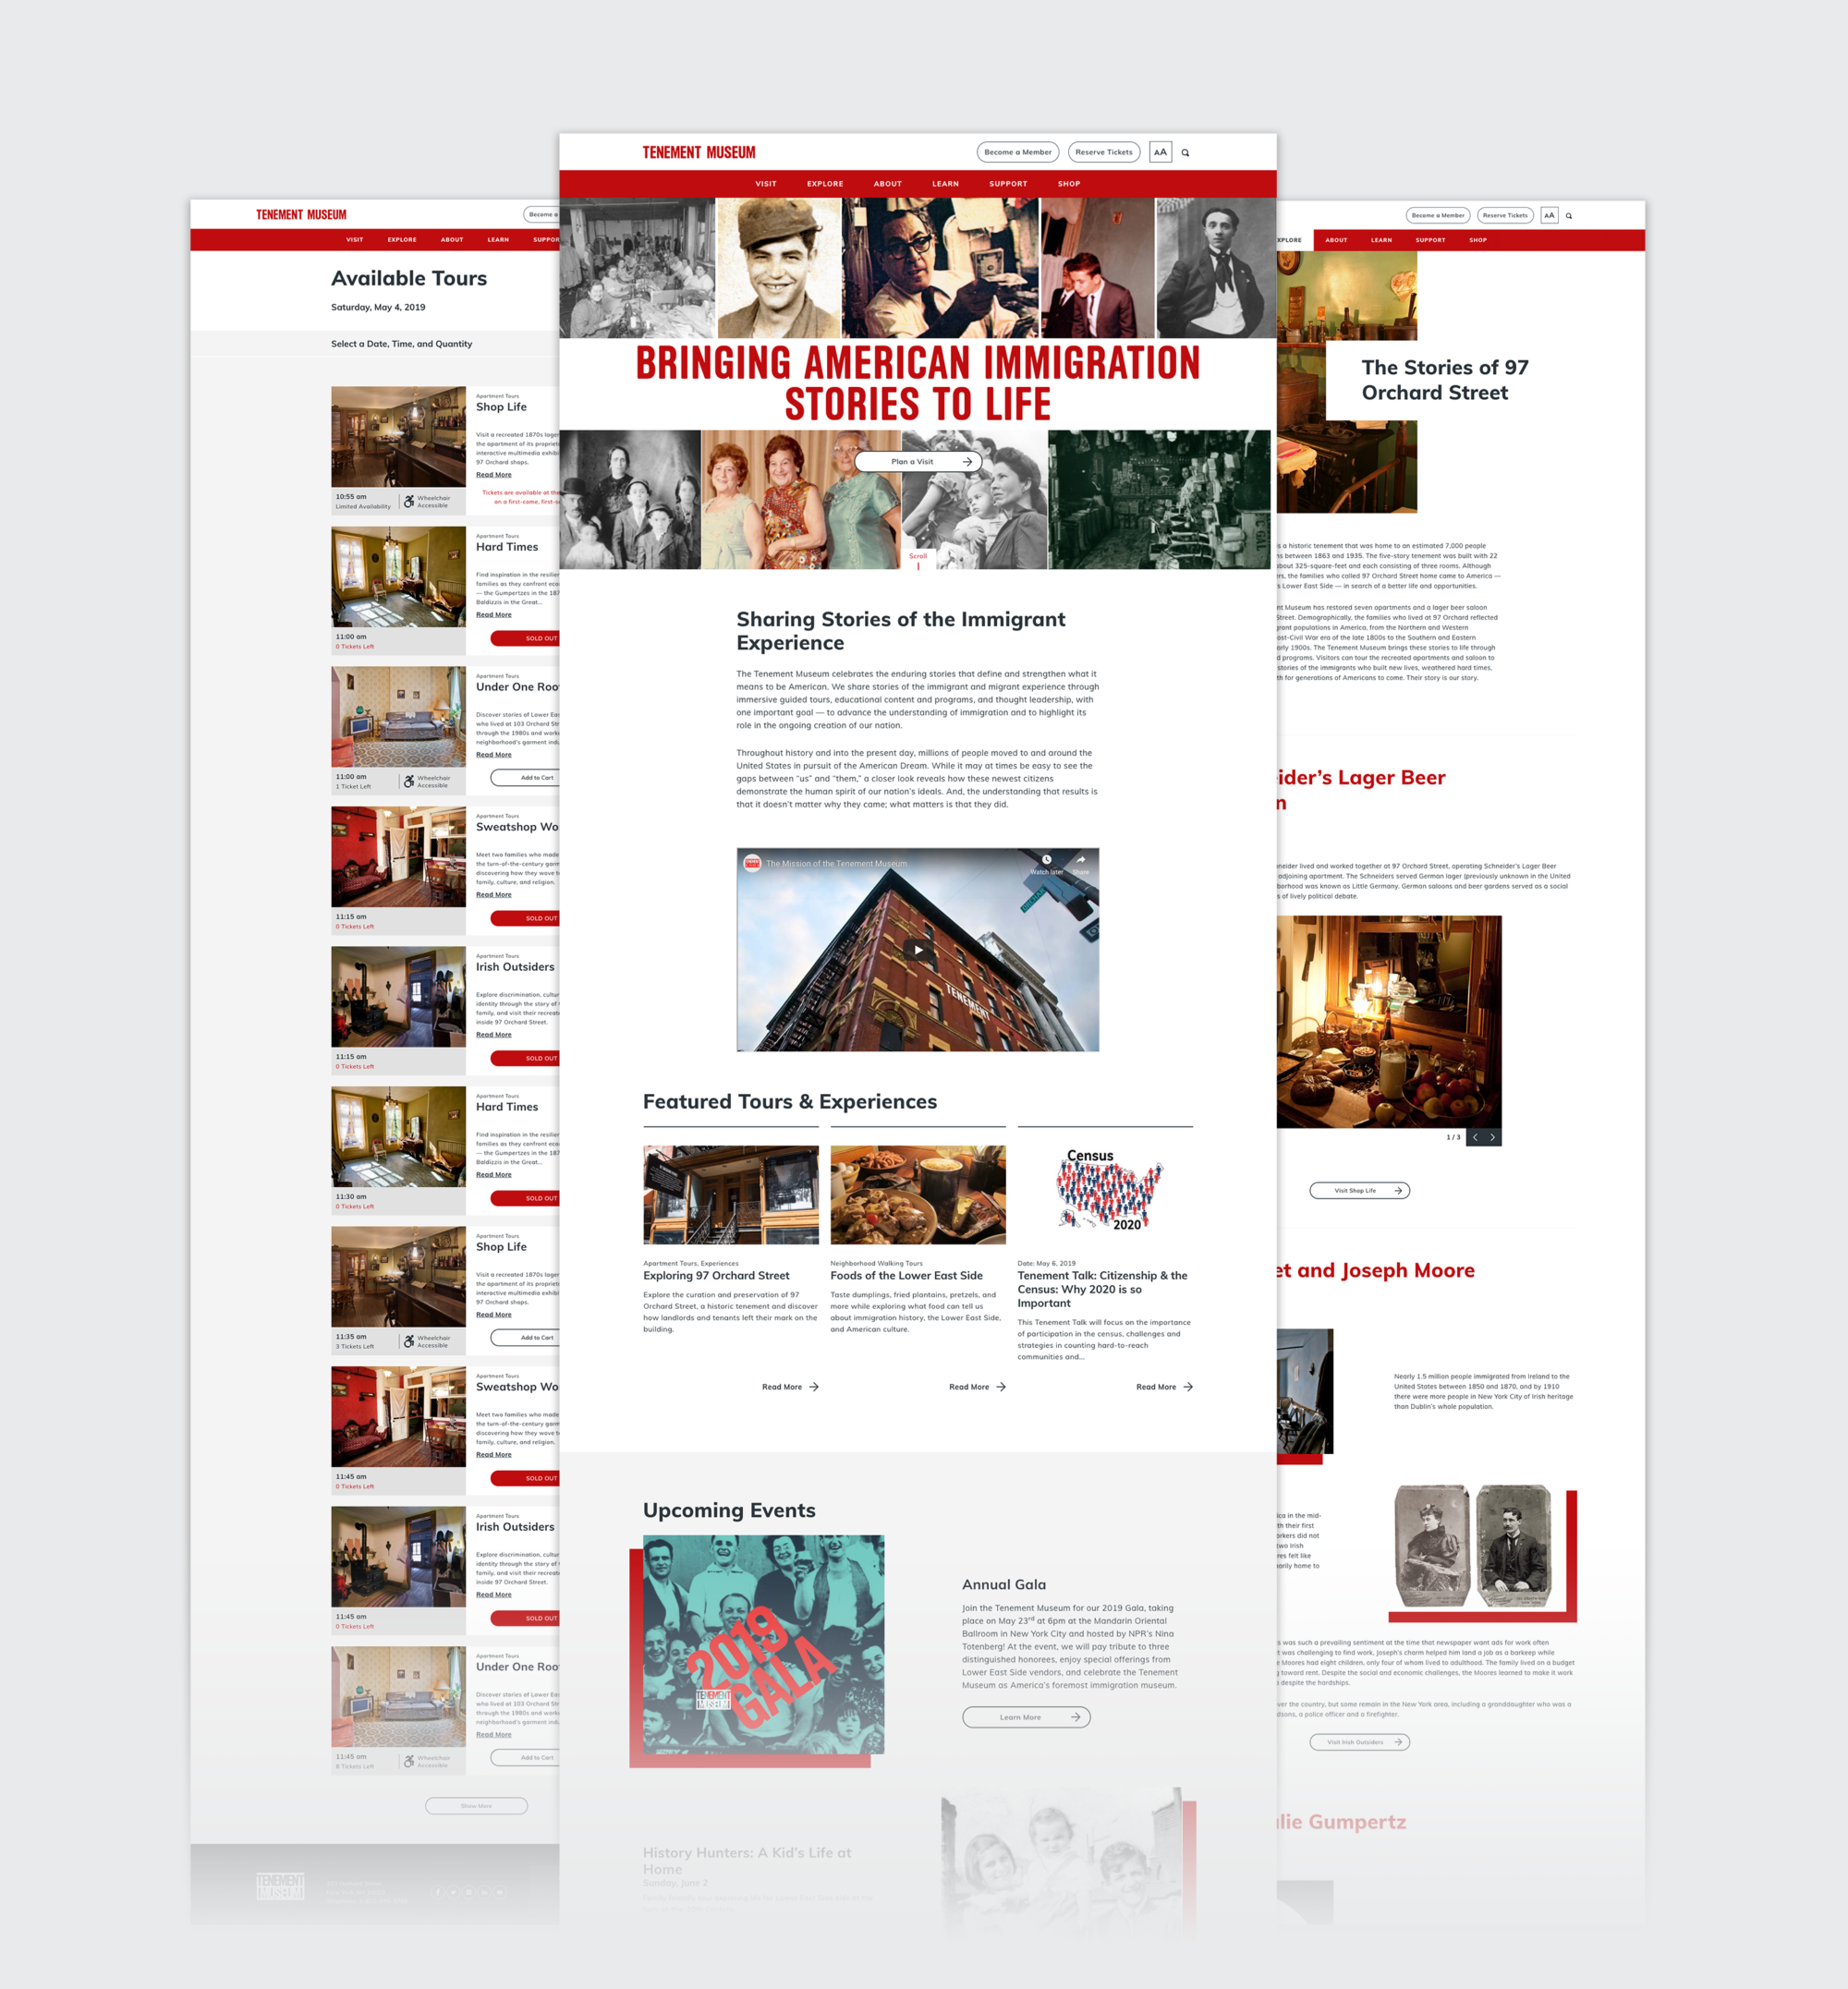 3 desktop pages showcasing website redesign aesthetic: Homepage, Available Tours search results, and the 97 Orchard Street timeline.